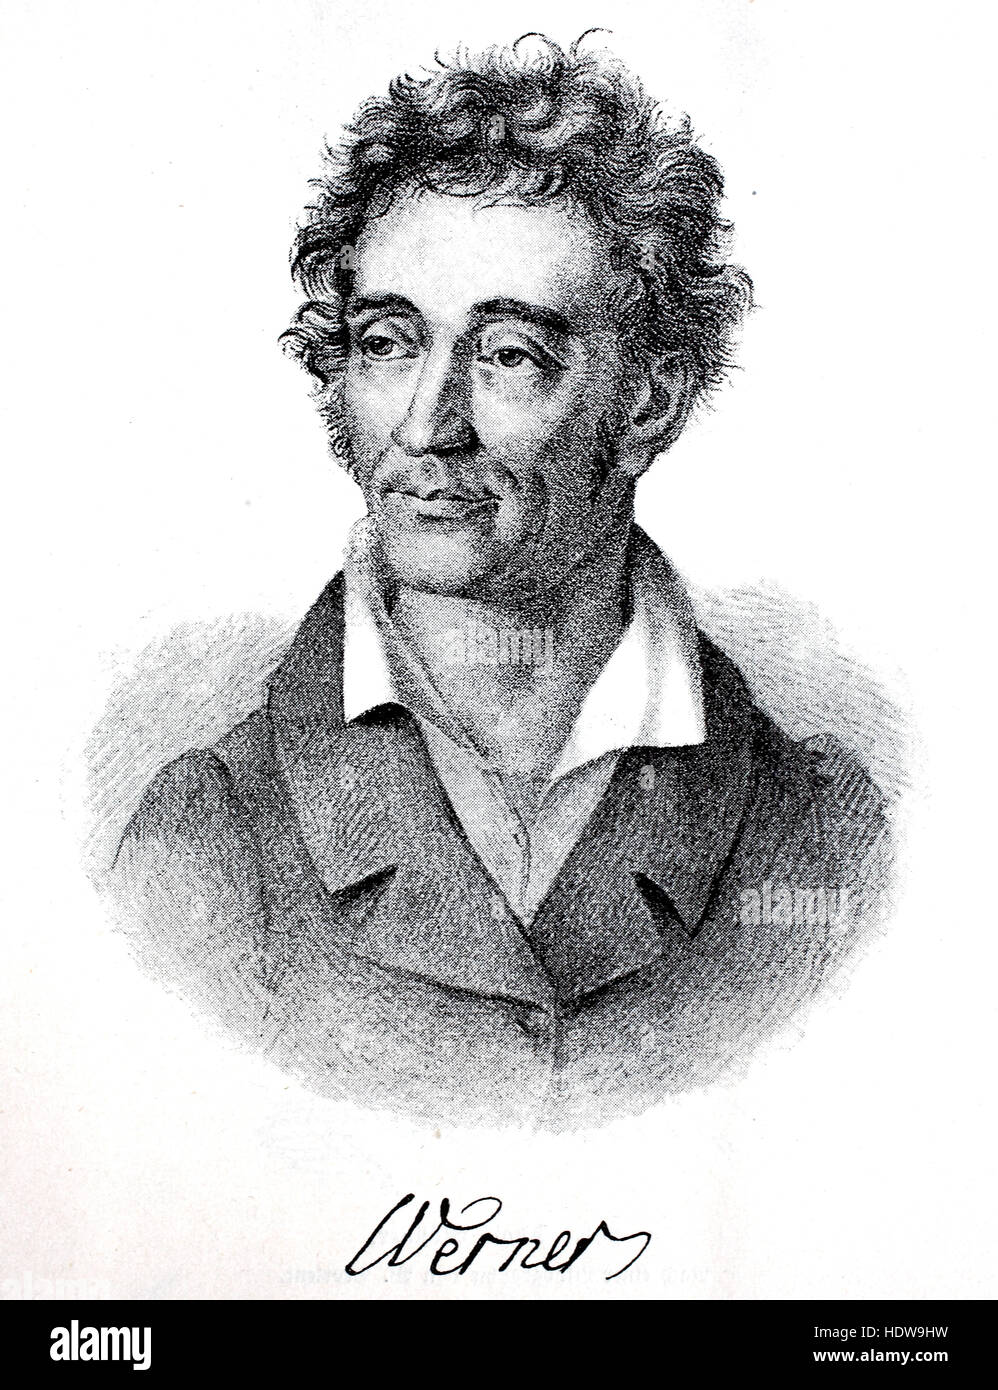 Friedrich Ludwig Zacharias Werner, 1768-823, a German poet, dramatist and preacher, woodcut from the year 1880 - Stock Image